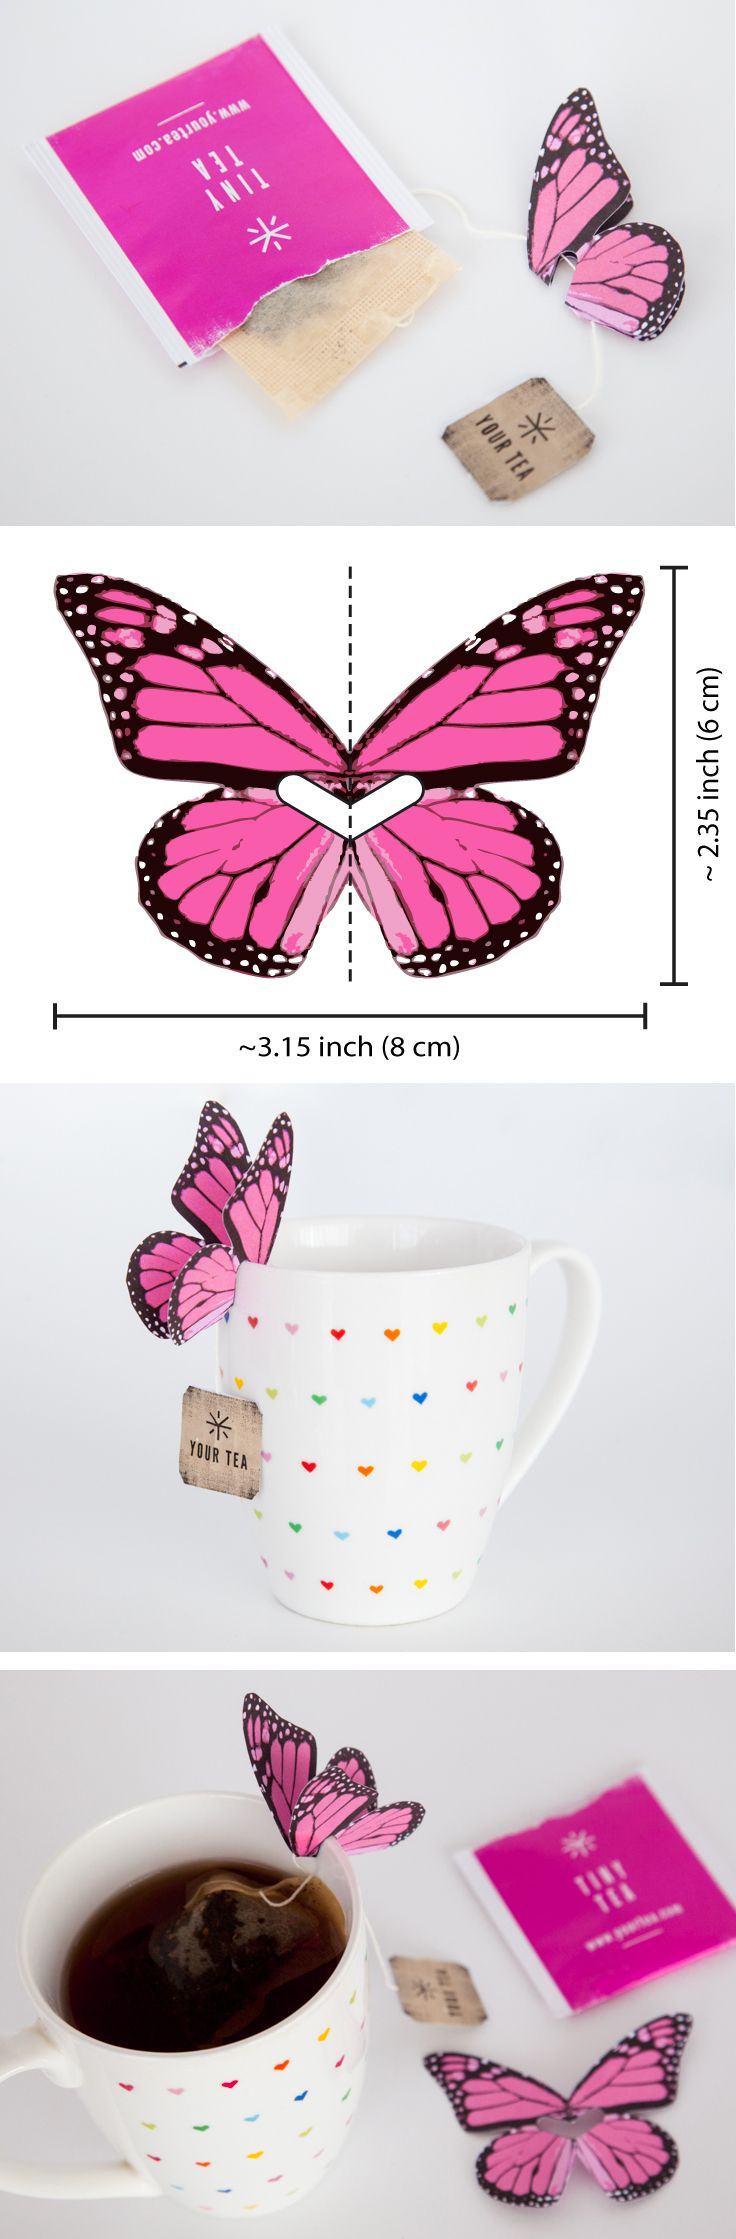 Diy paper butterfly tea bag holder perfect d cor for a garden party or bridal shower